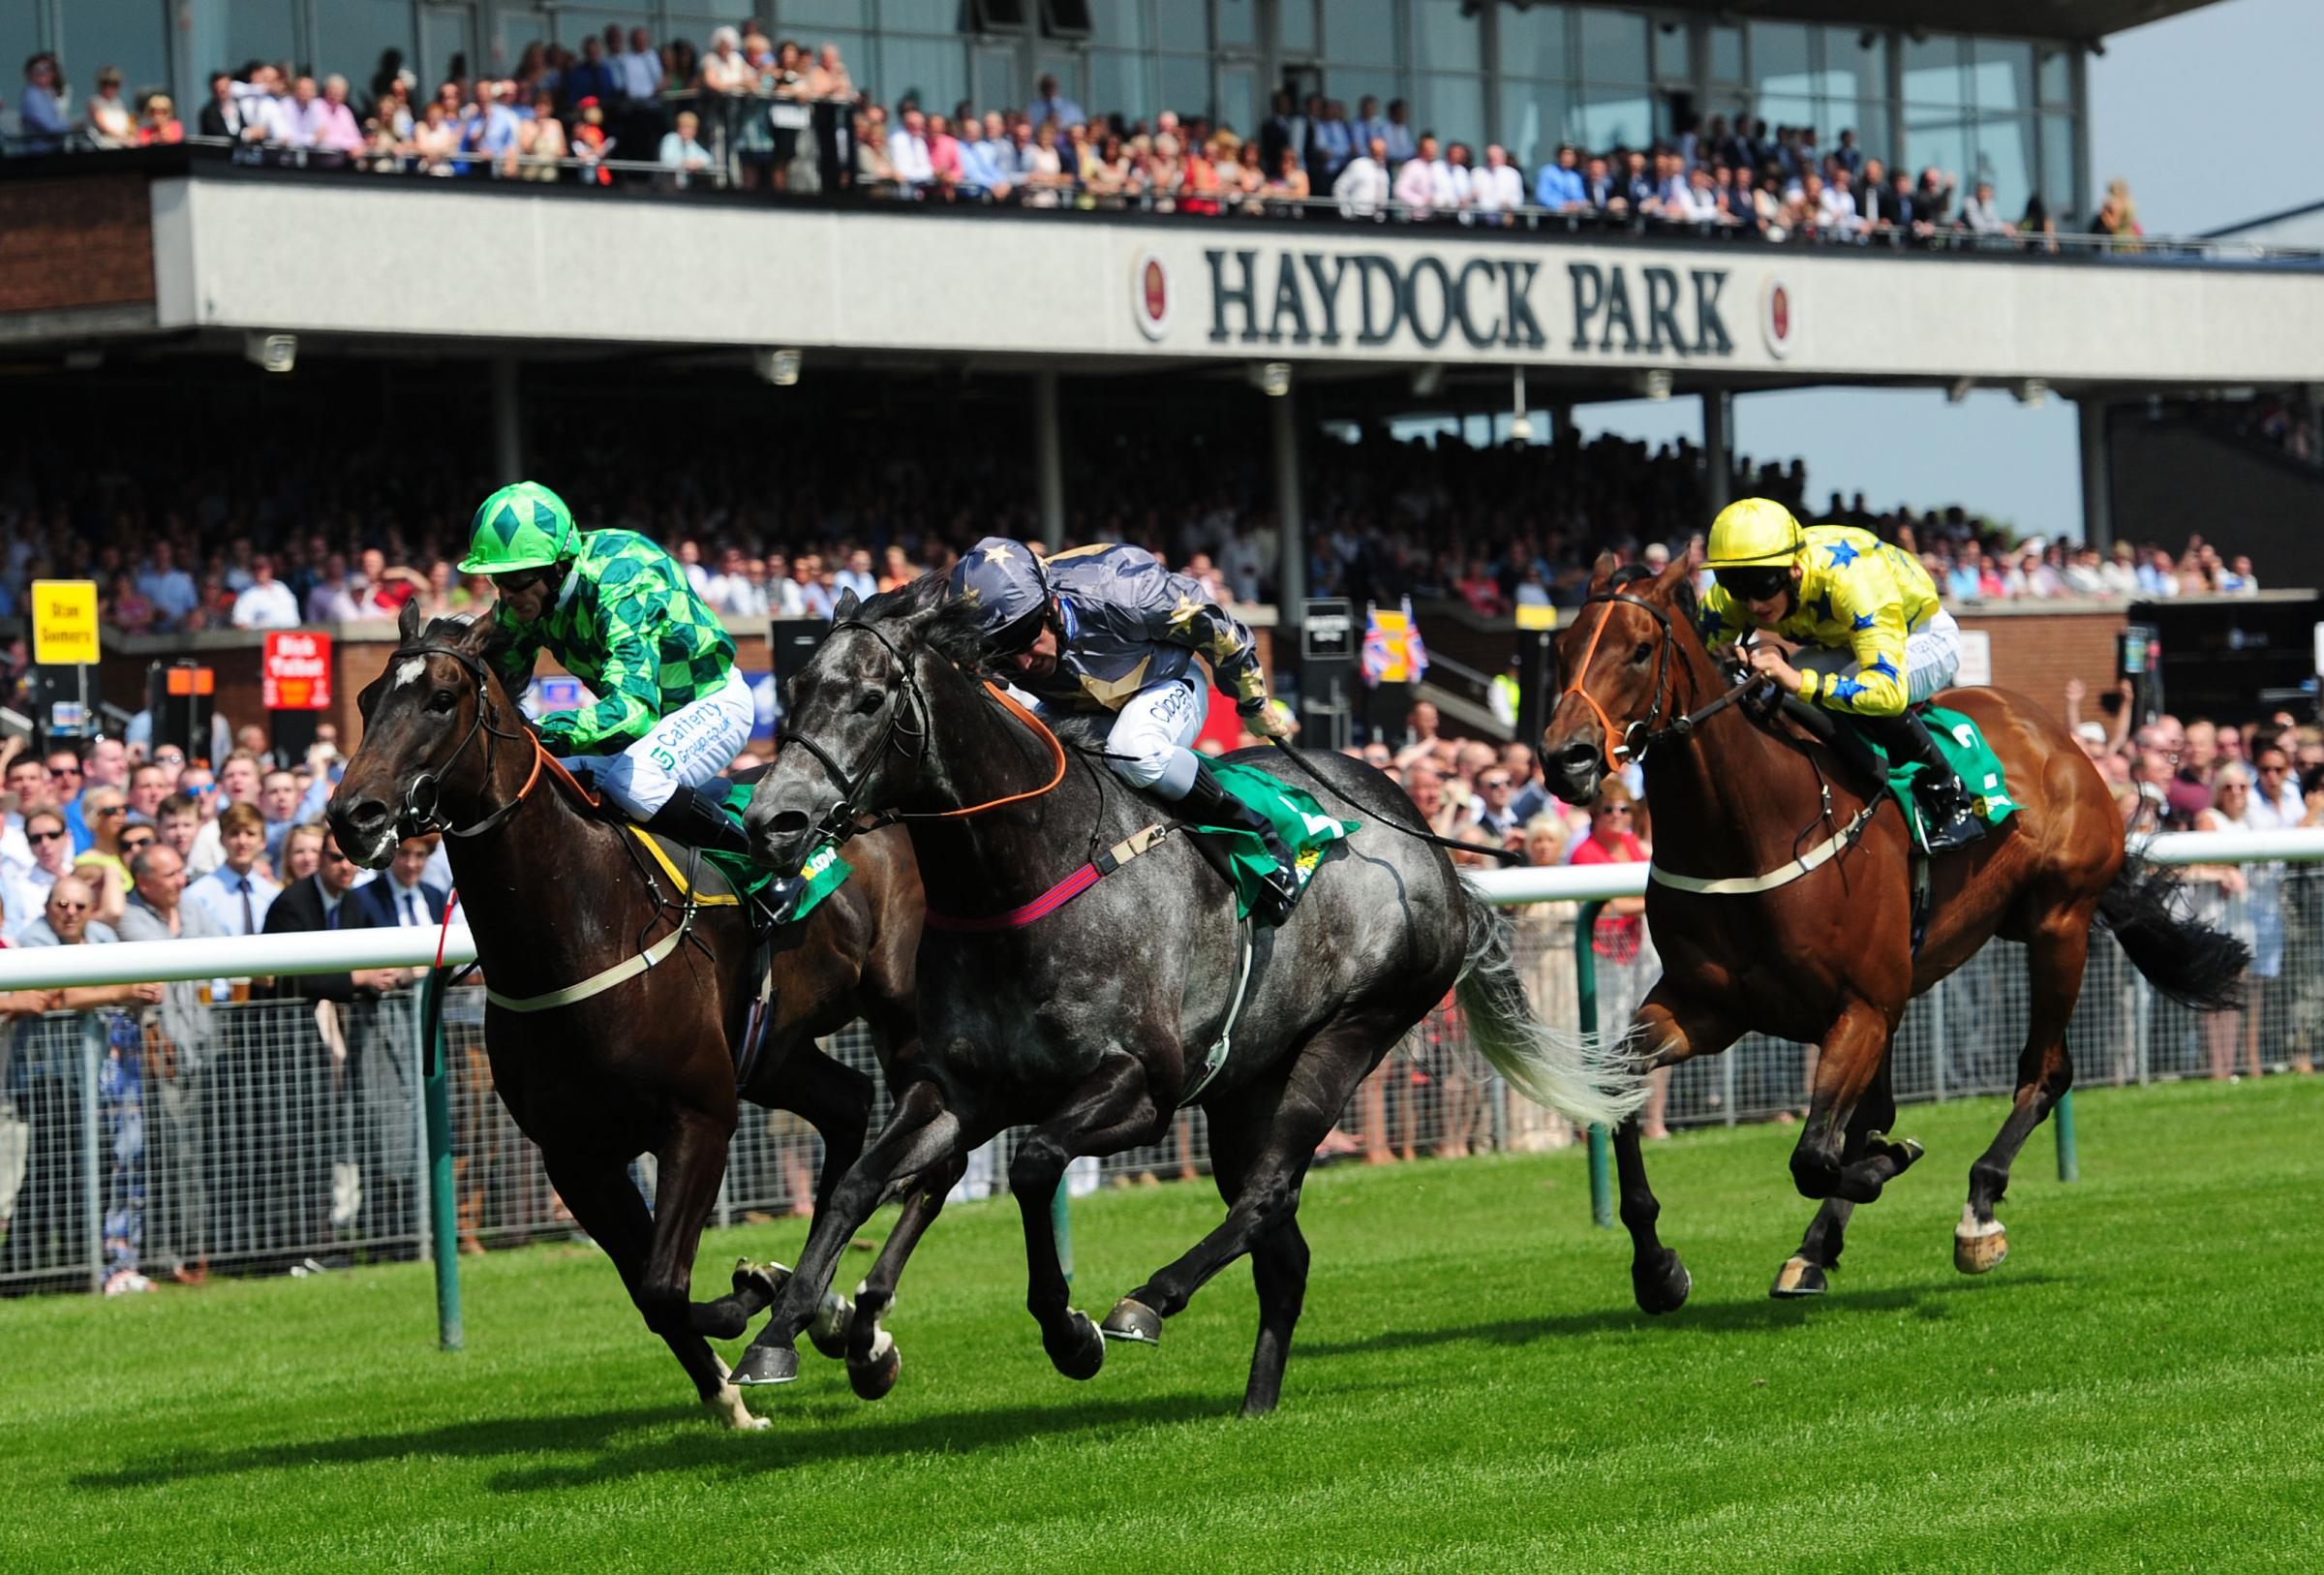 Haydock is a popular racing venue